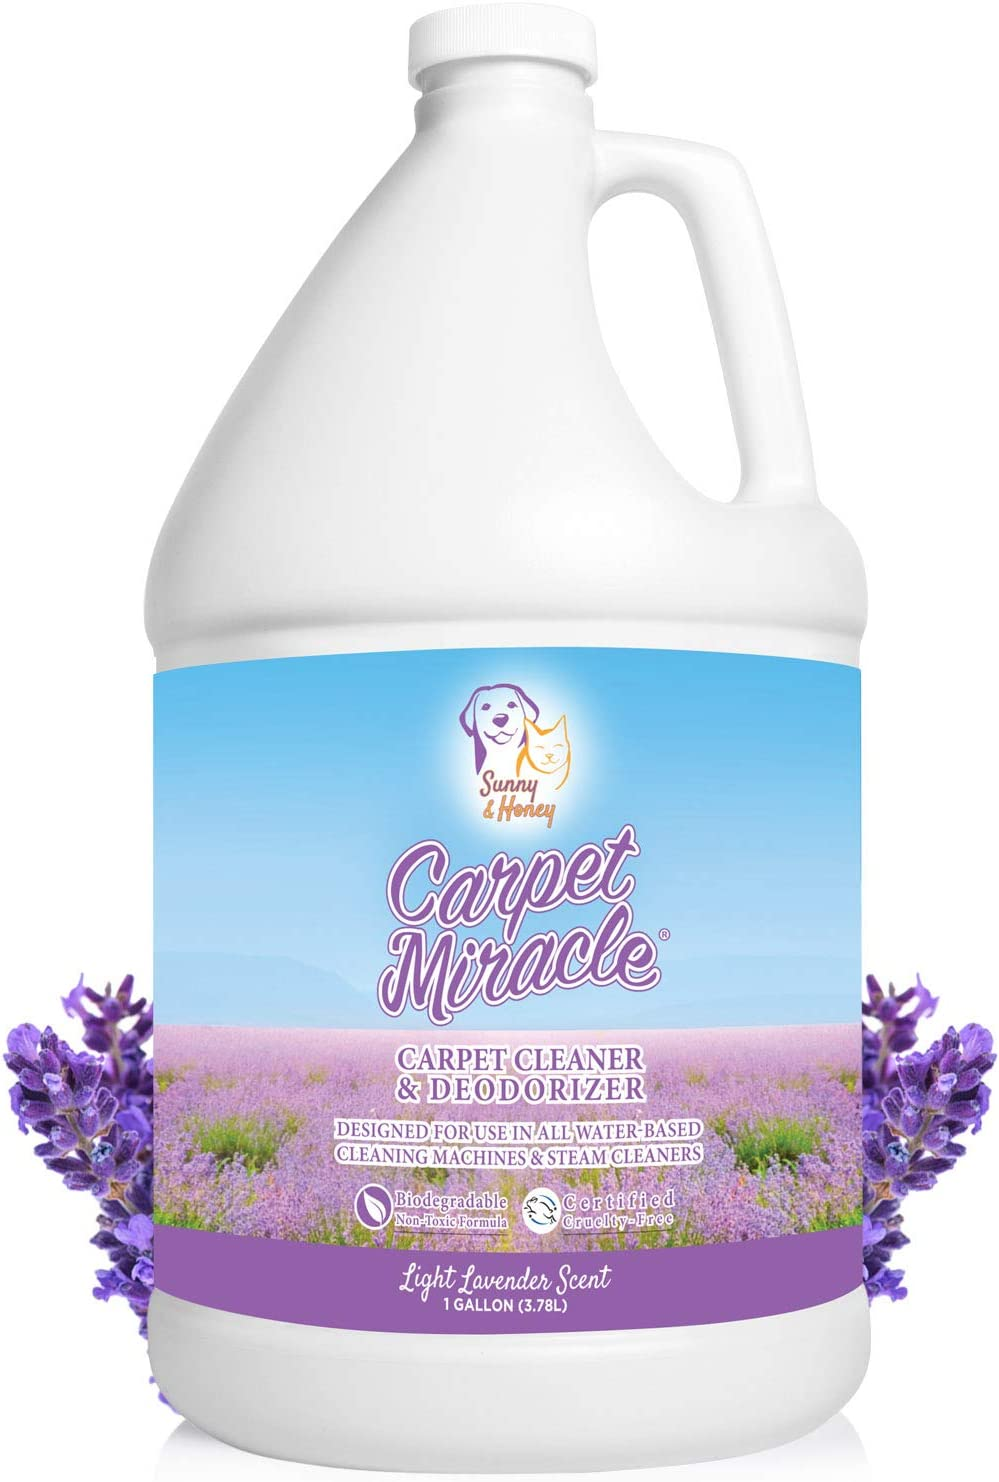 Carpet Miracle - The Best Carpet Cleaner Shampoo Solution for Machine Use, Deep Stain Remover and Odor Deodorizing Formula, Use On Rug Car Upholstery and Carpets (LAV, 1 Gallon)